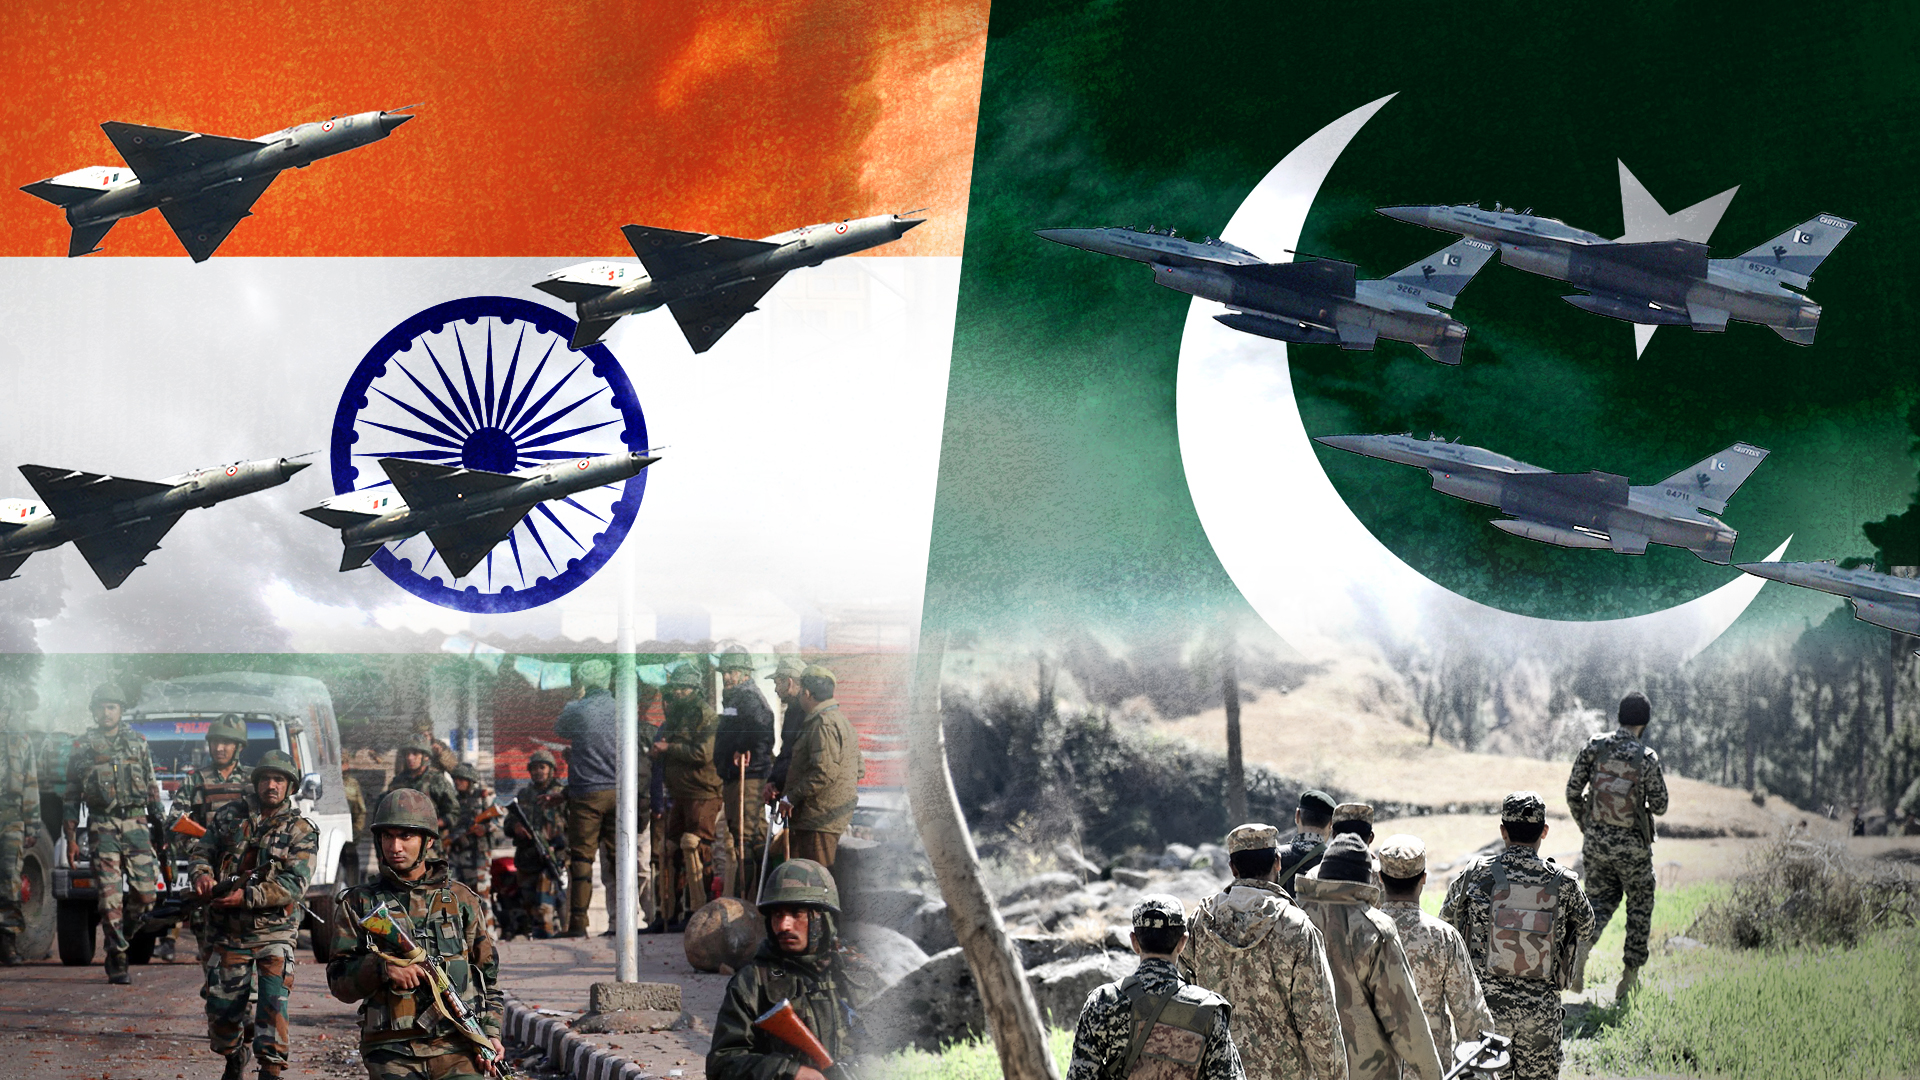 India-Pakistan crisis may be easing, but nuclear threat still hangs over the region | CNN